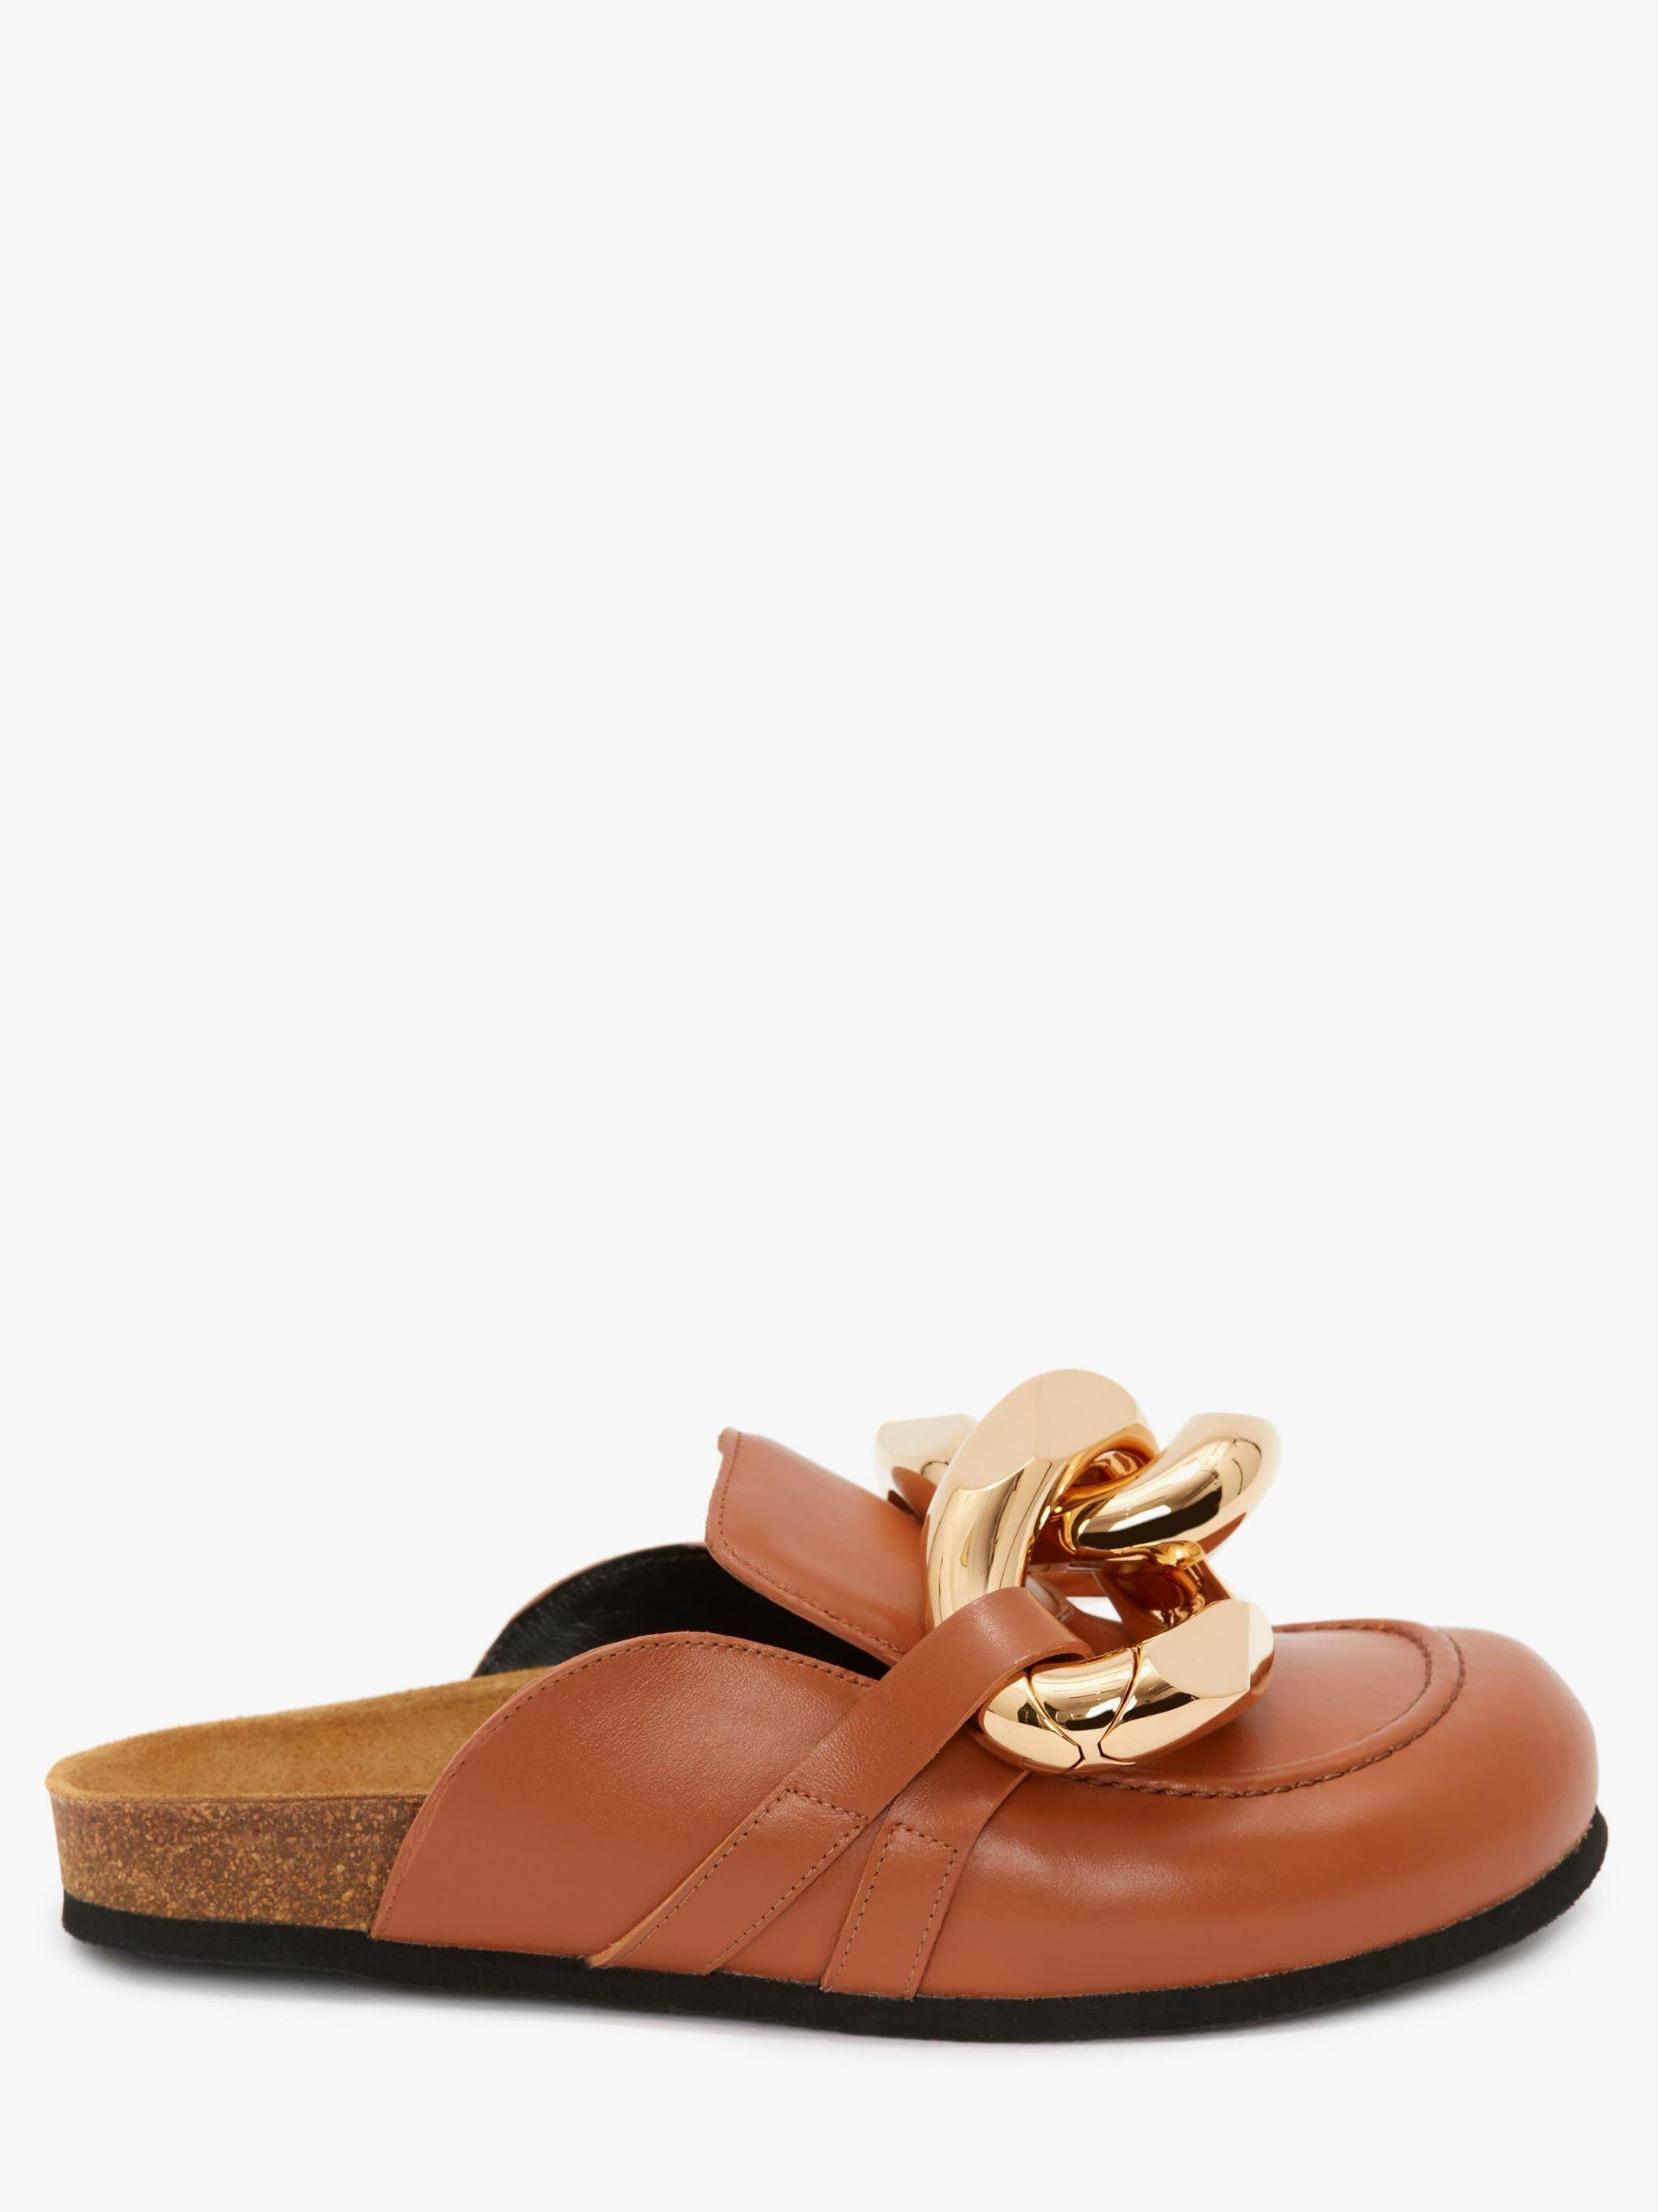 WOMEN'S CHAIN LOAFER MULES